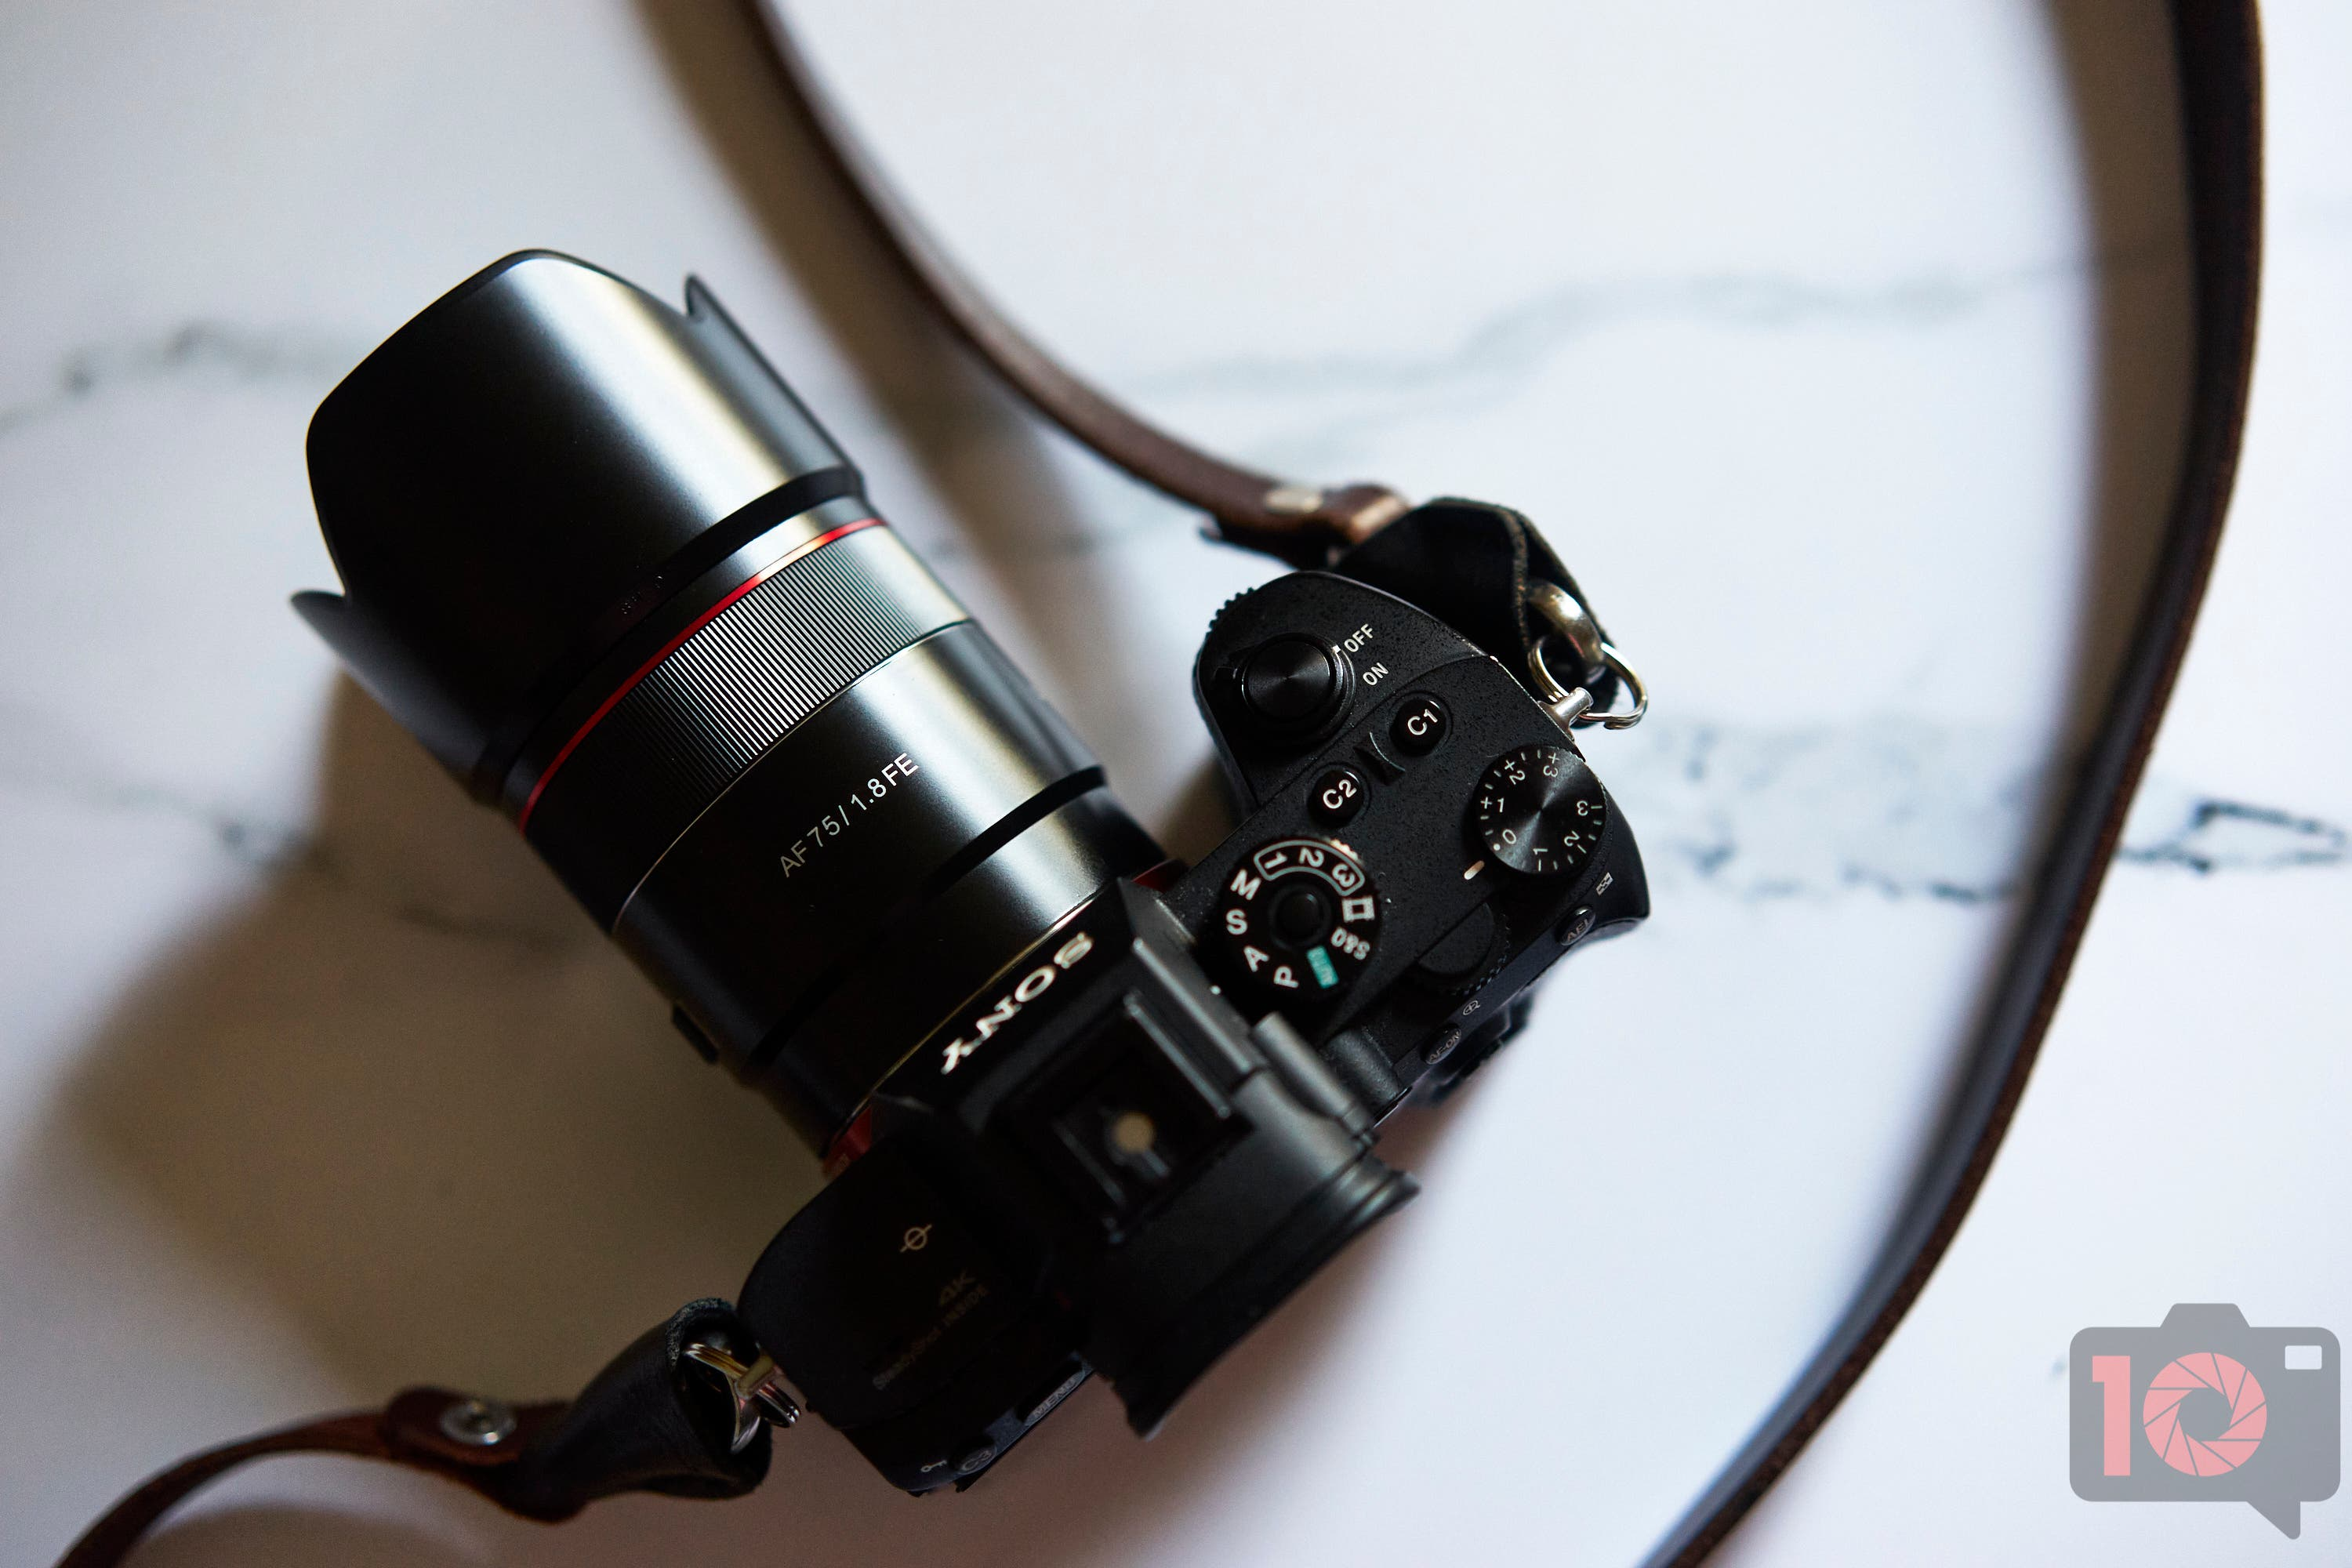 Can You Believe the Quality? Samyang 75mm f1.8 AF Review